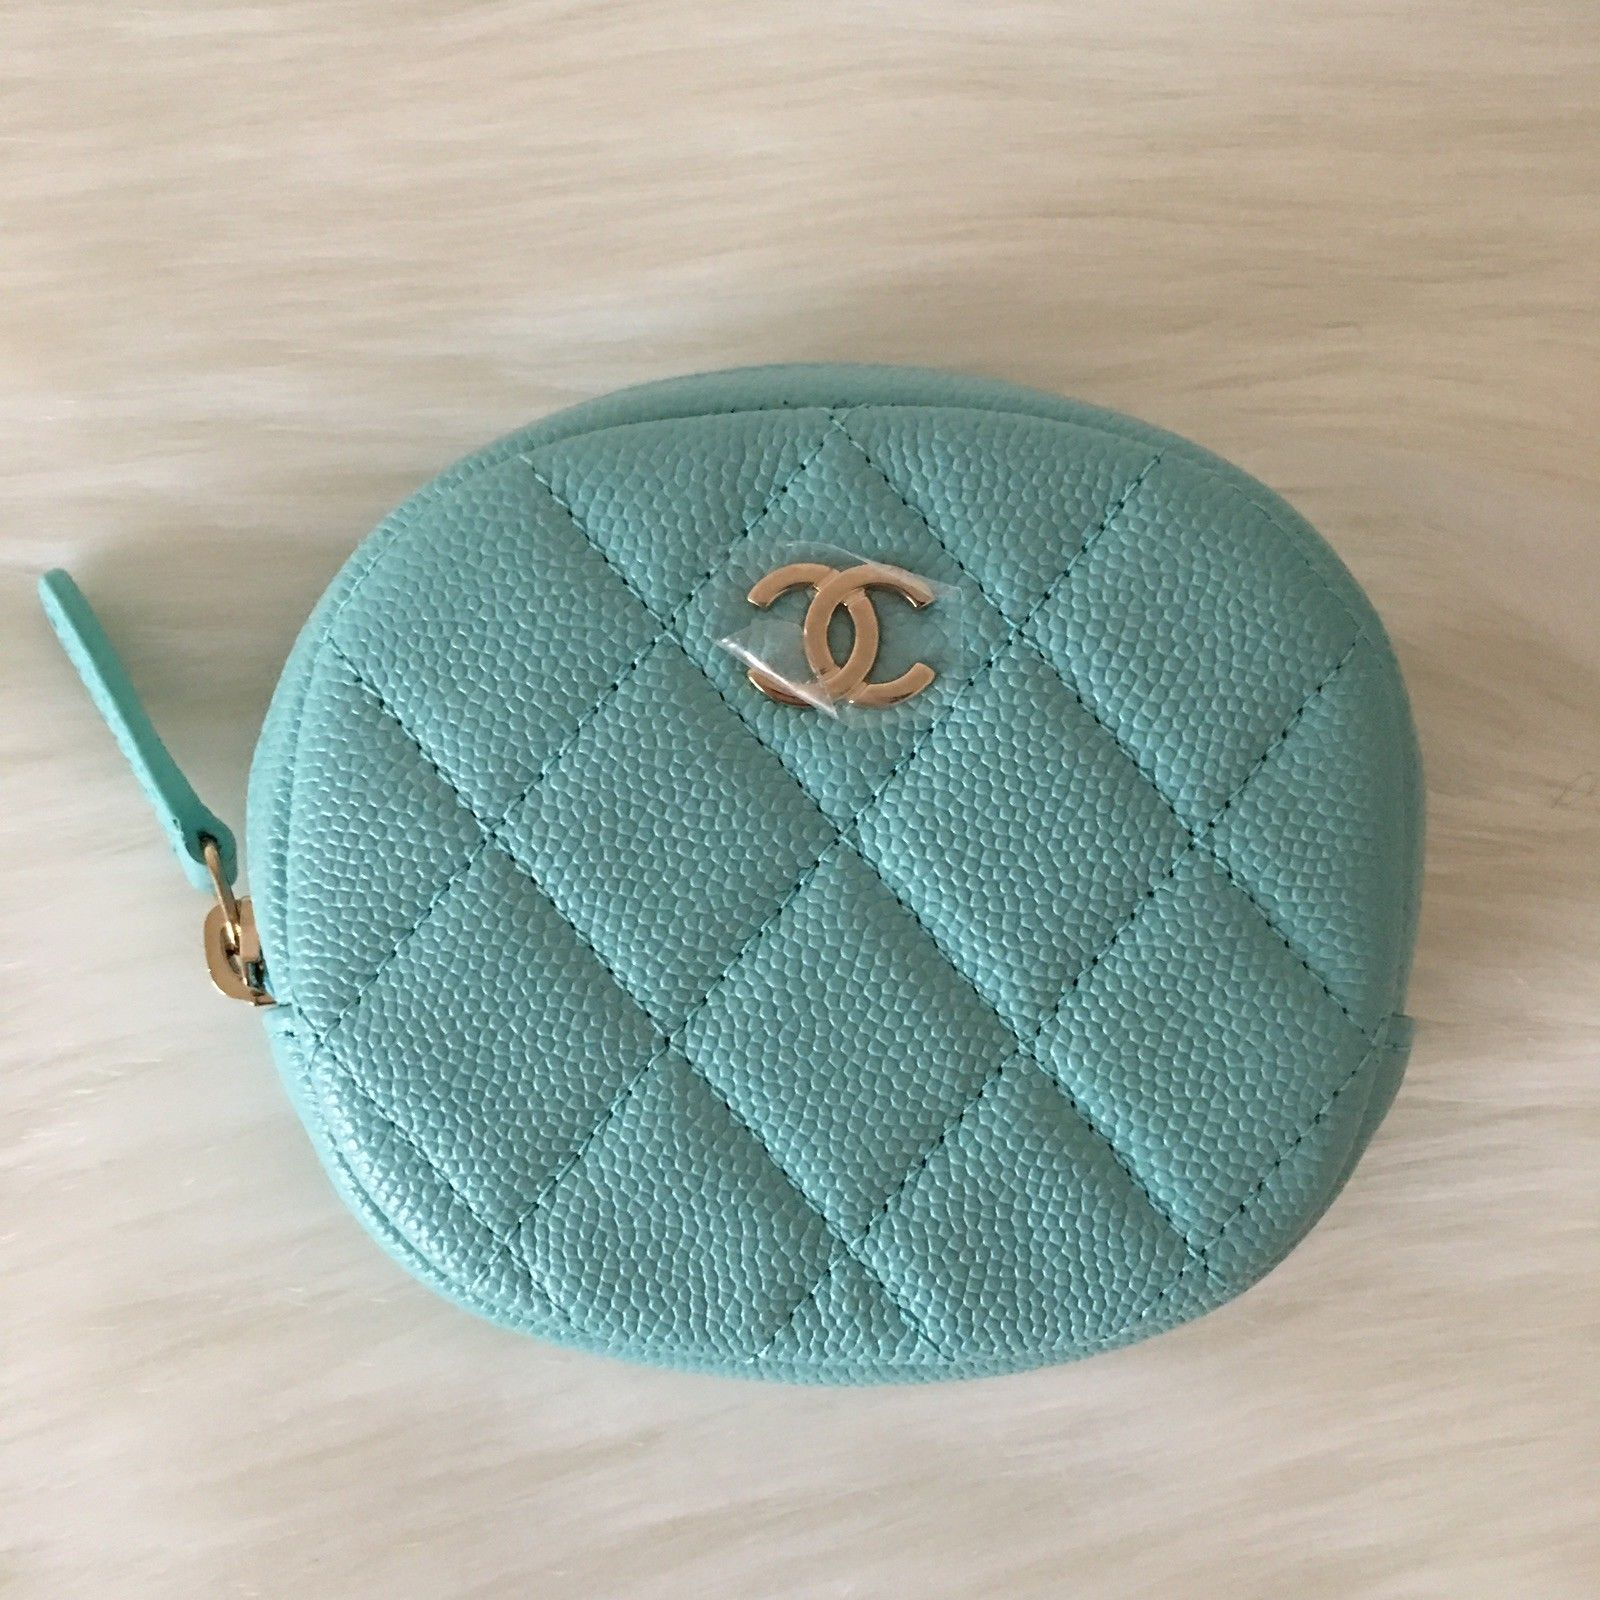 bcd0dbb93004 Brand New Chanel Round Coin Purse Light Blue 19C $775.0 #chanel #handbag